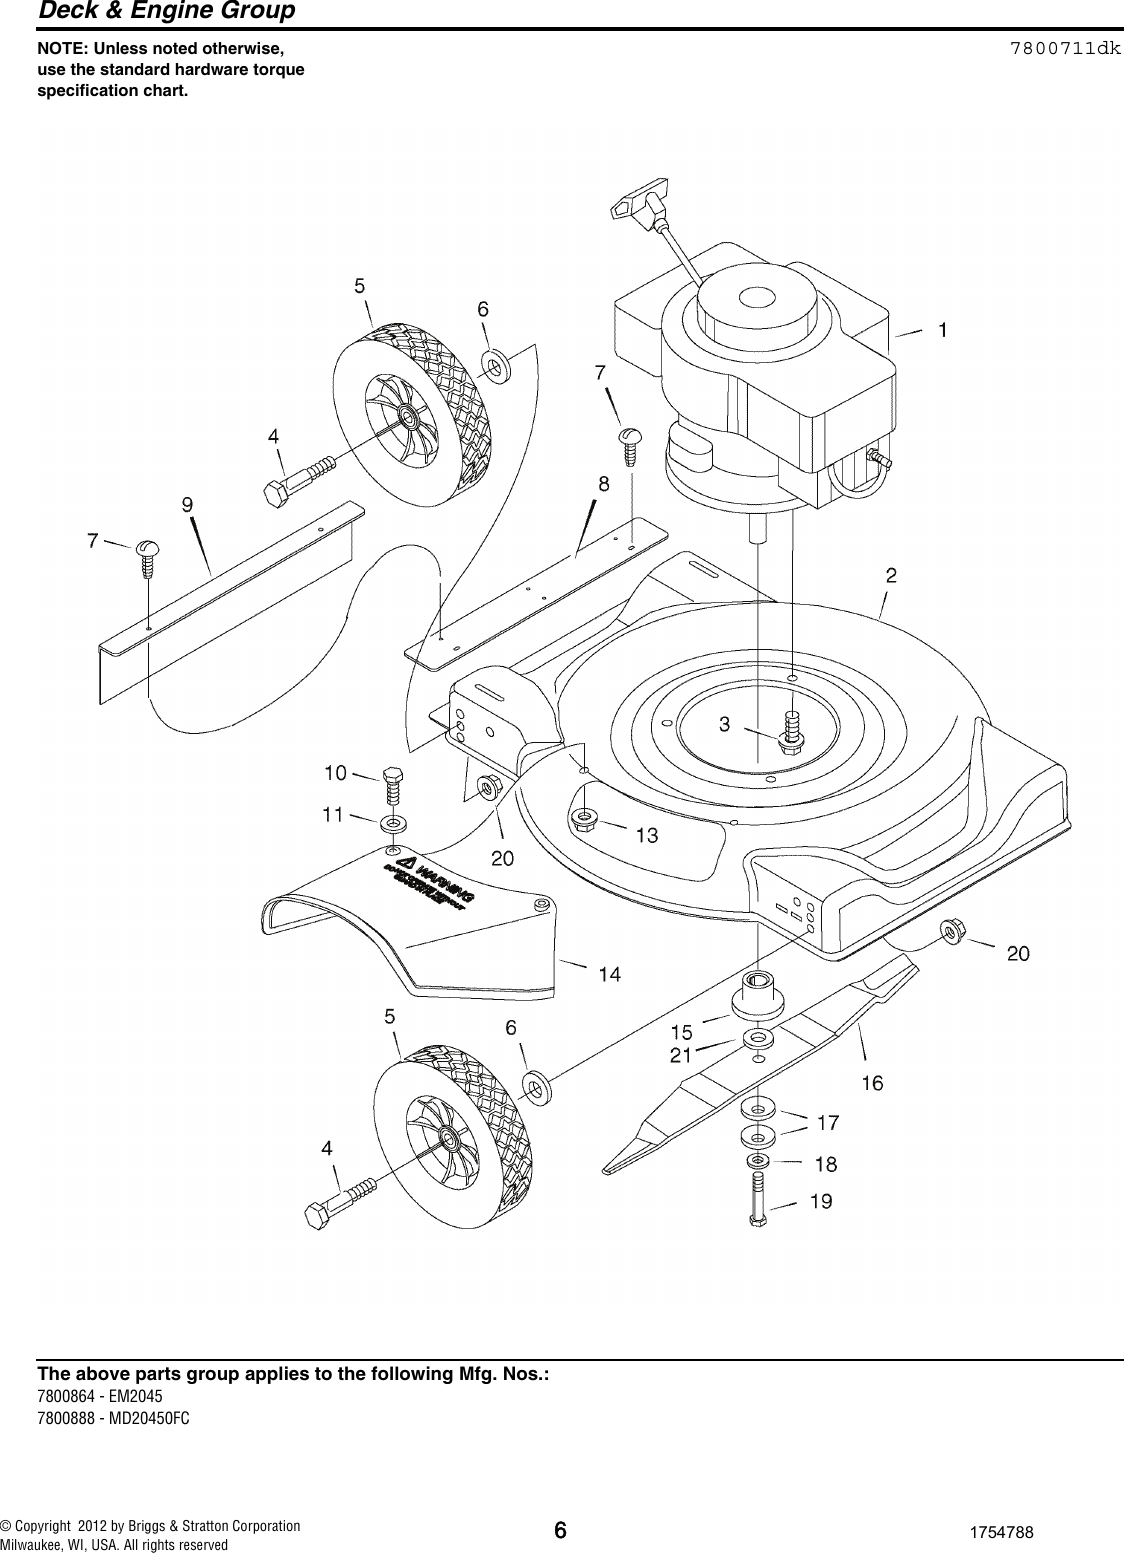 Murray Lawn Mower 7800864 Users Manual ILLUSTRATED PARTS